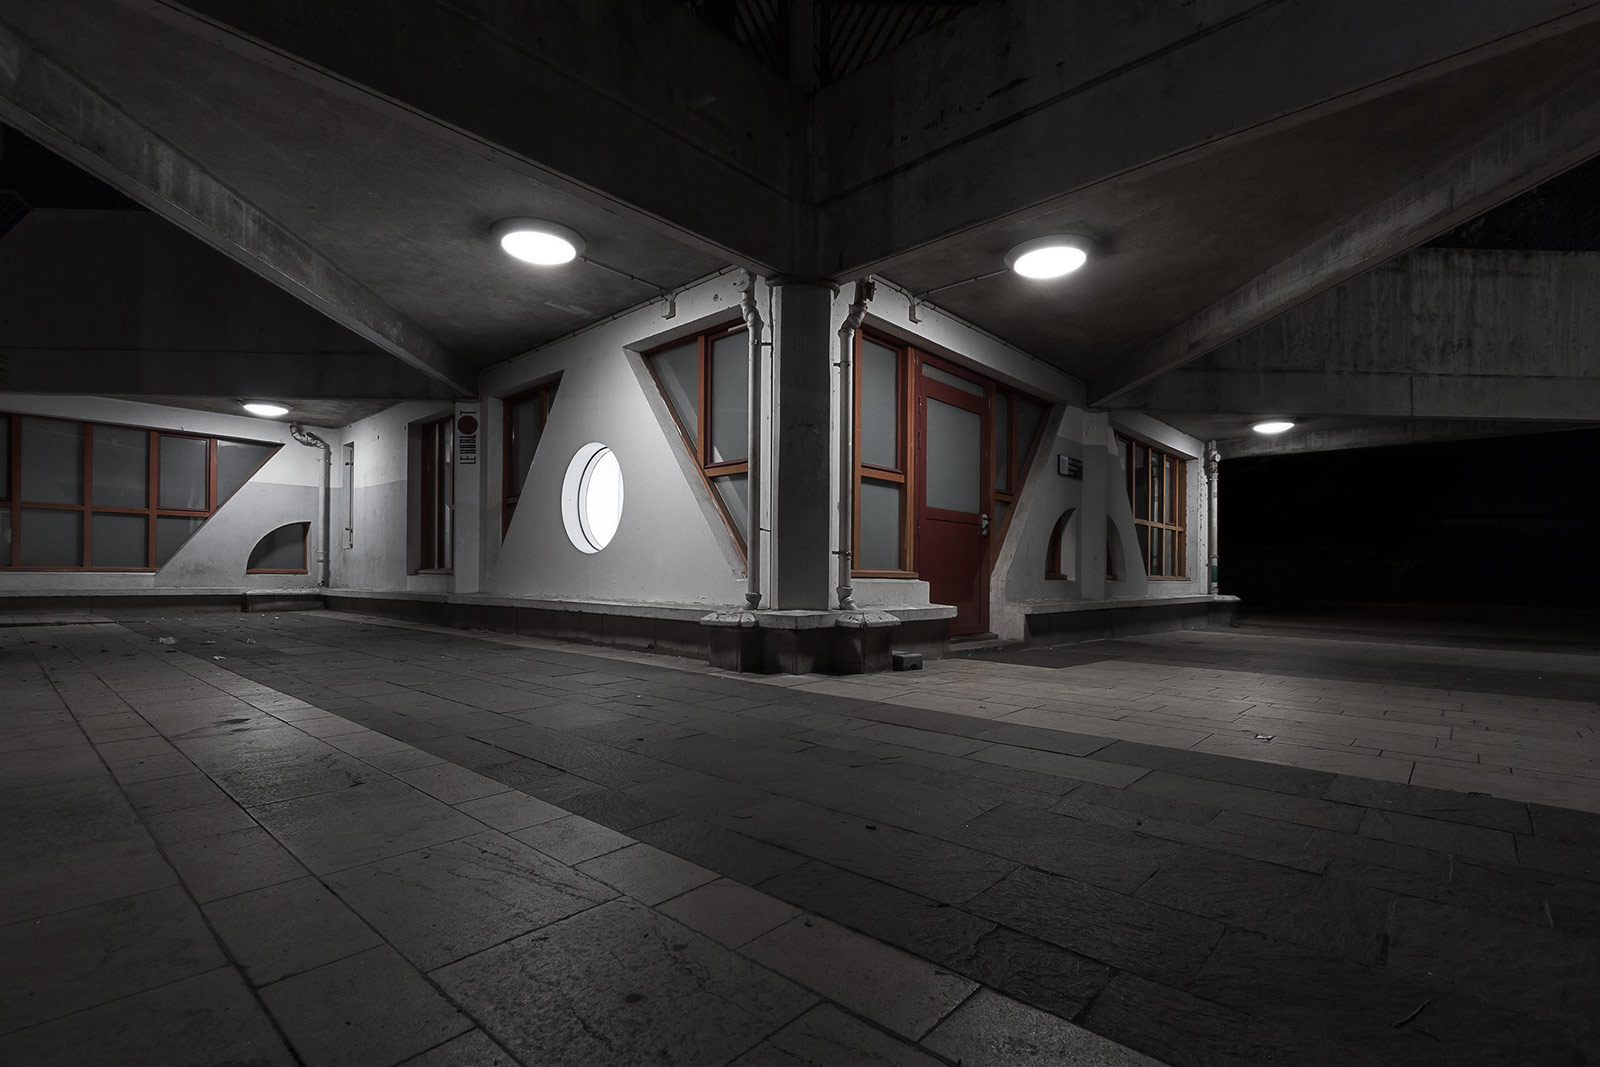 Star of concrete - Urban night photography